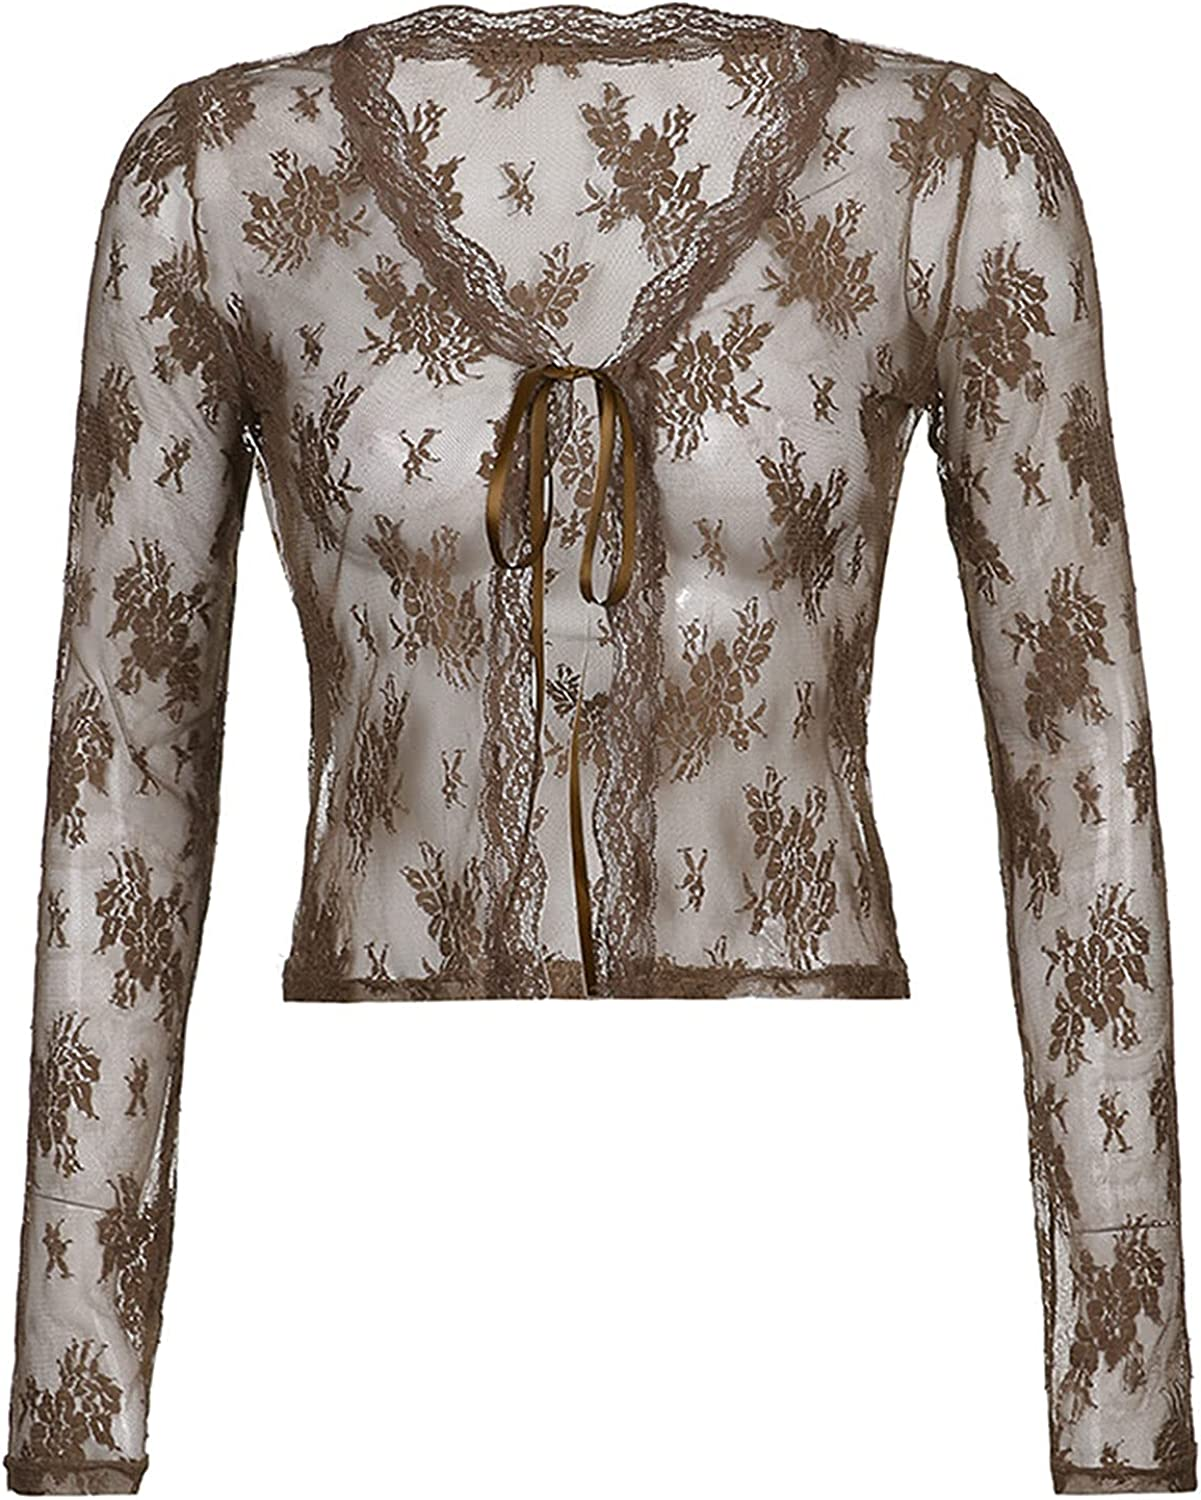 Sexy Sheer Floral Lace Shrug for Women, Casual Long Sleeve Tie Up Cropped Cardigan Brown